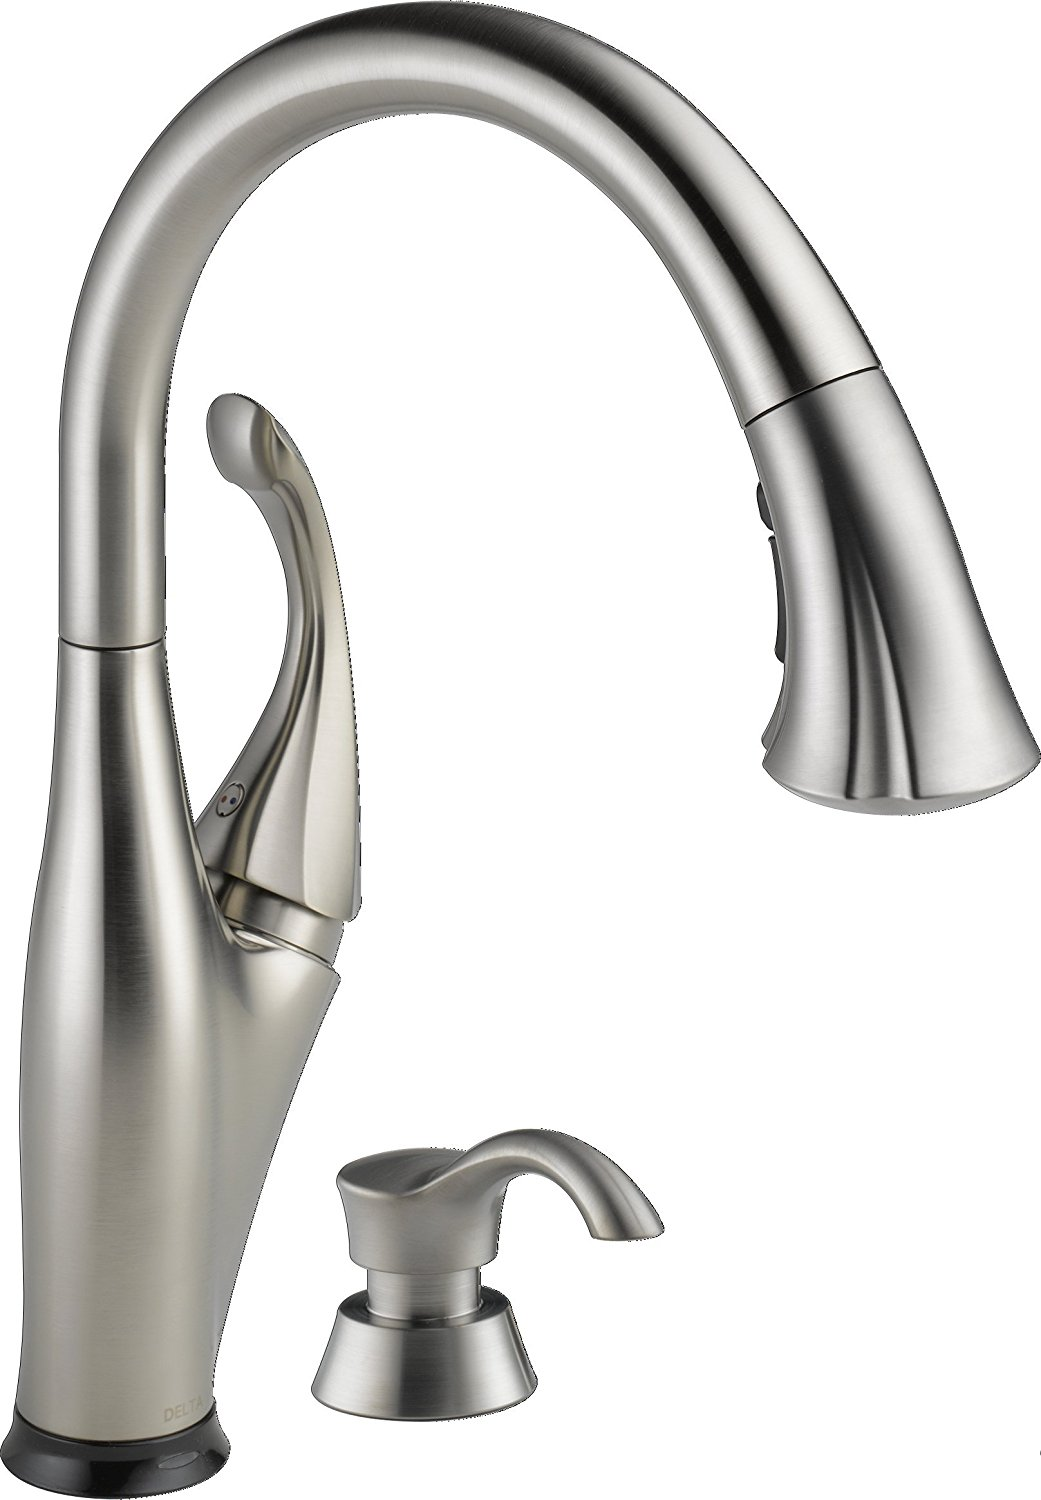 Best And Cheap Kitchen Faucets Discount Modern Decor Glamour decorglamour.com kitchen kitchen faucets.html collectionx=18195